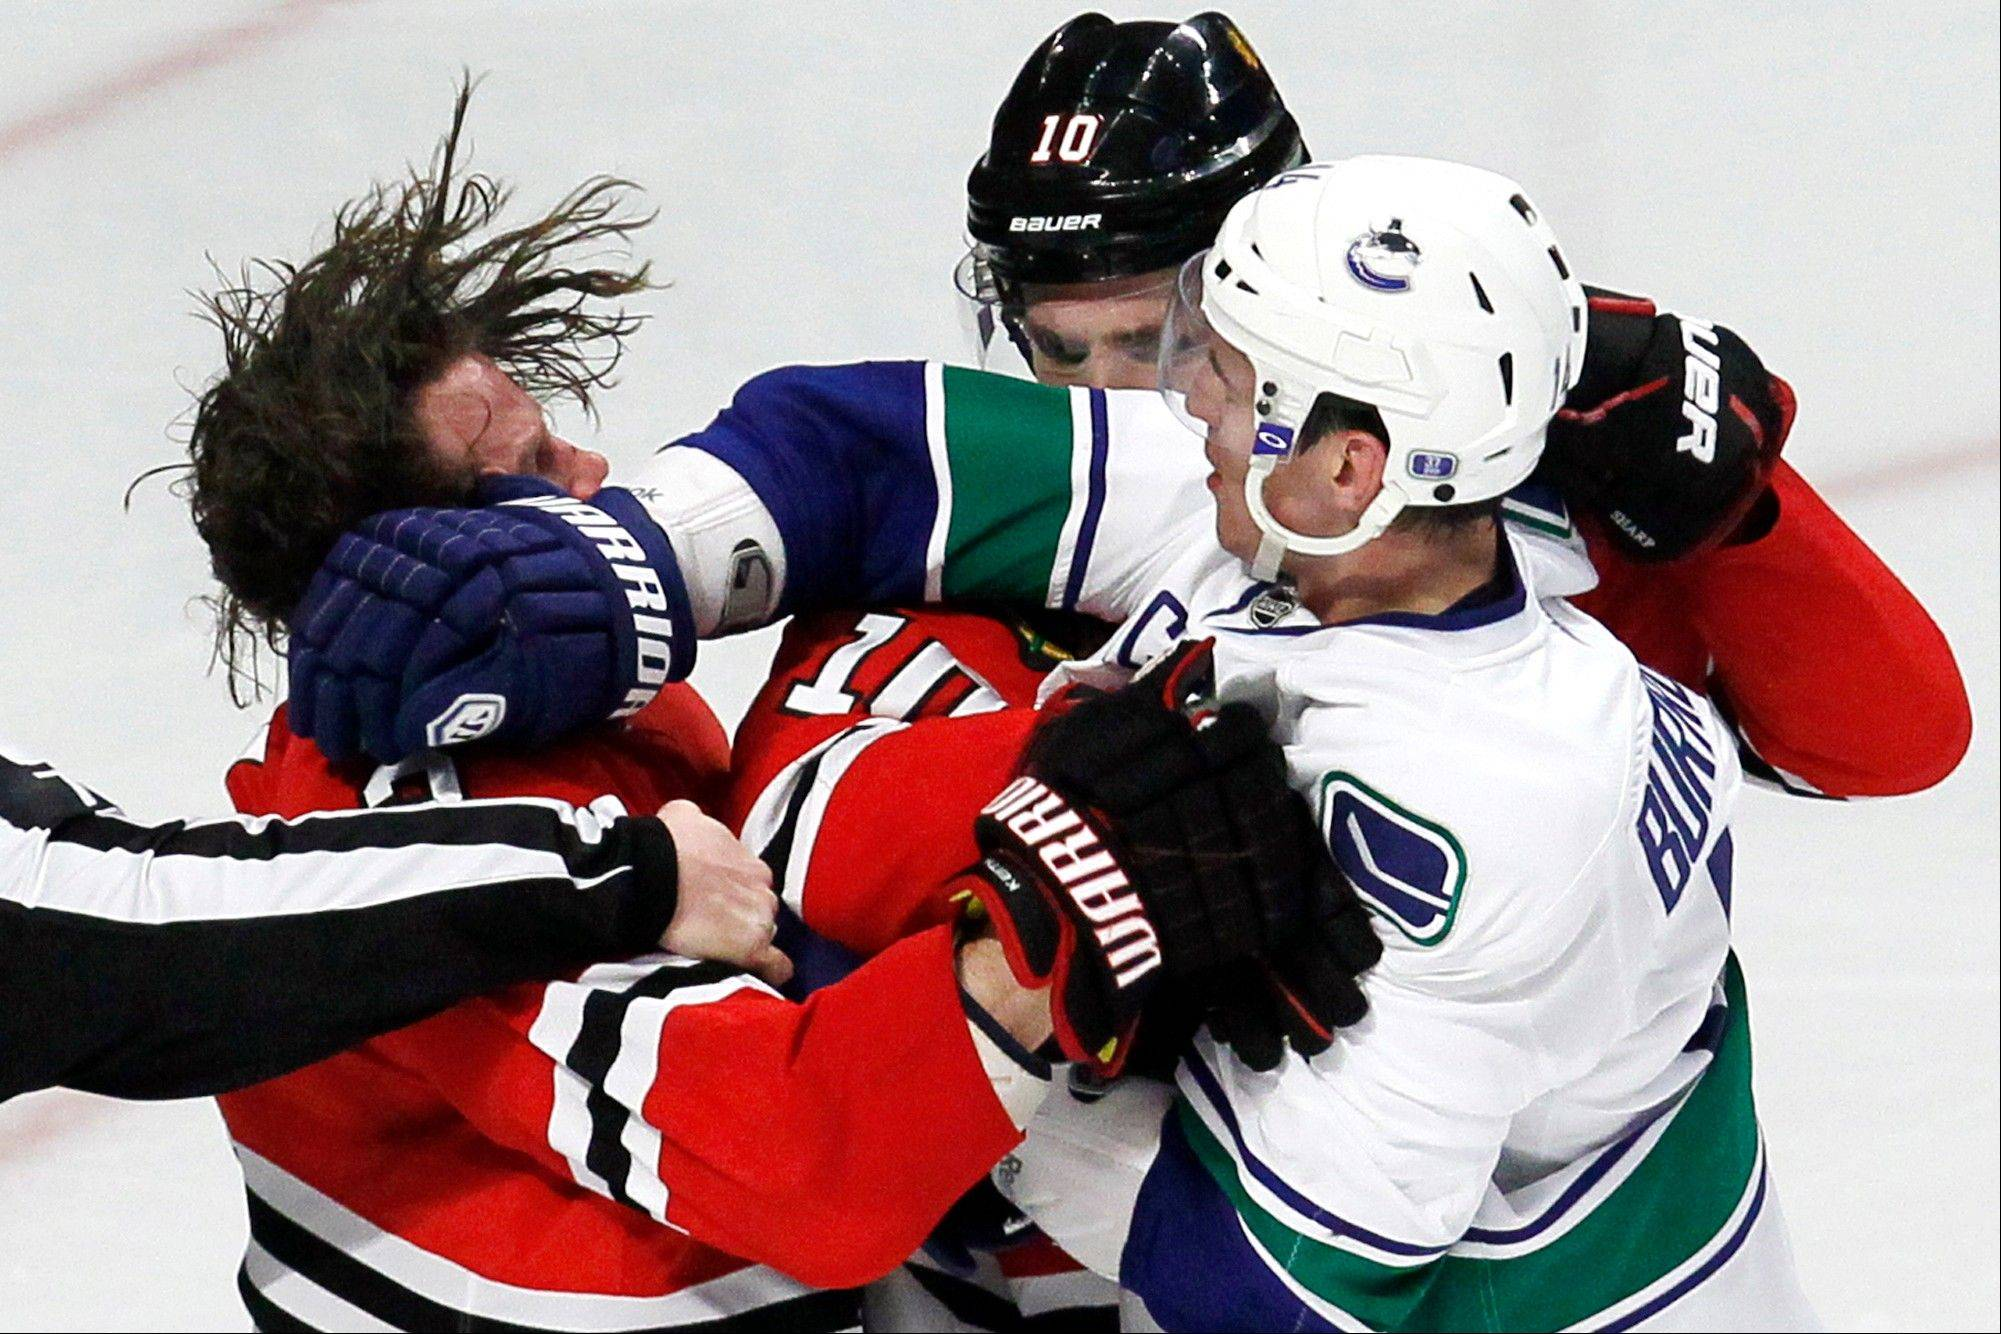 Vancouver Canucks right wing Alex Burrows hits Blackhawks defenseman Duncan Keith in the face as Patrick Sharp tries to break them apart Wednesday during the second period.